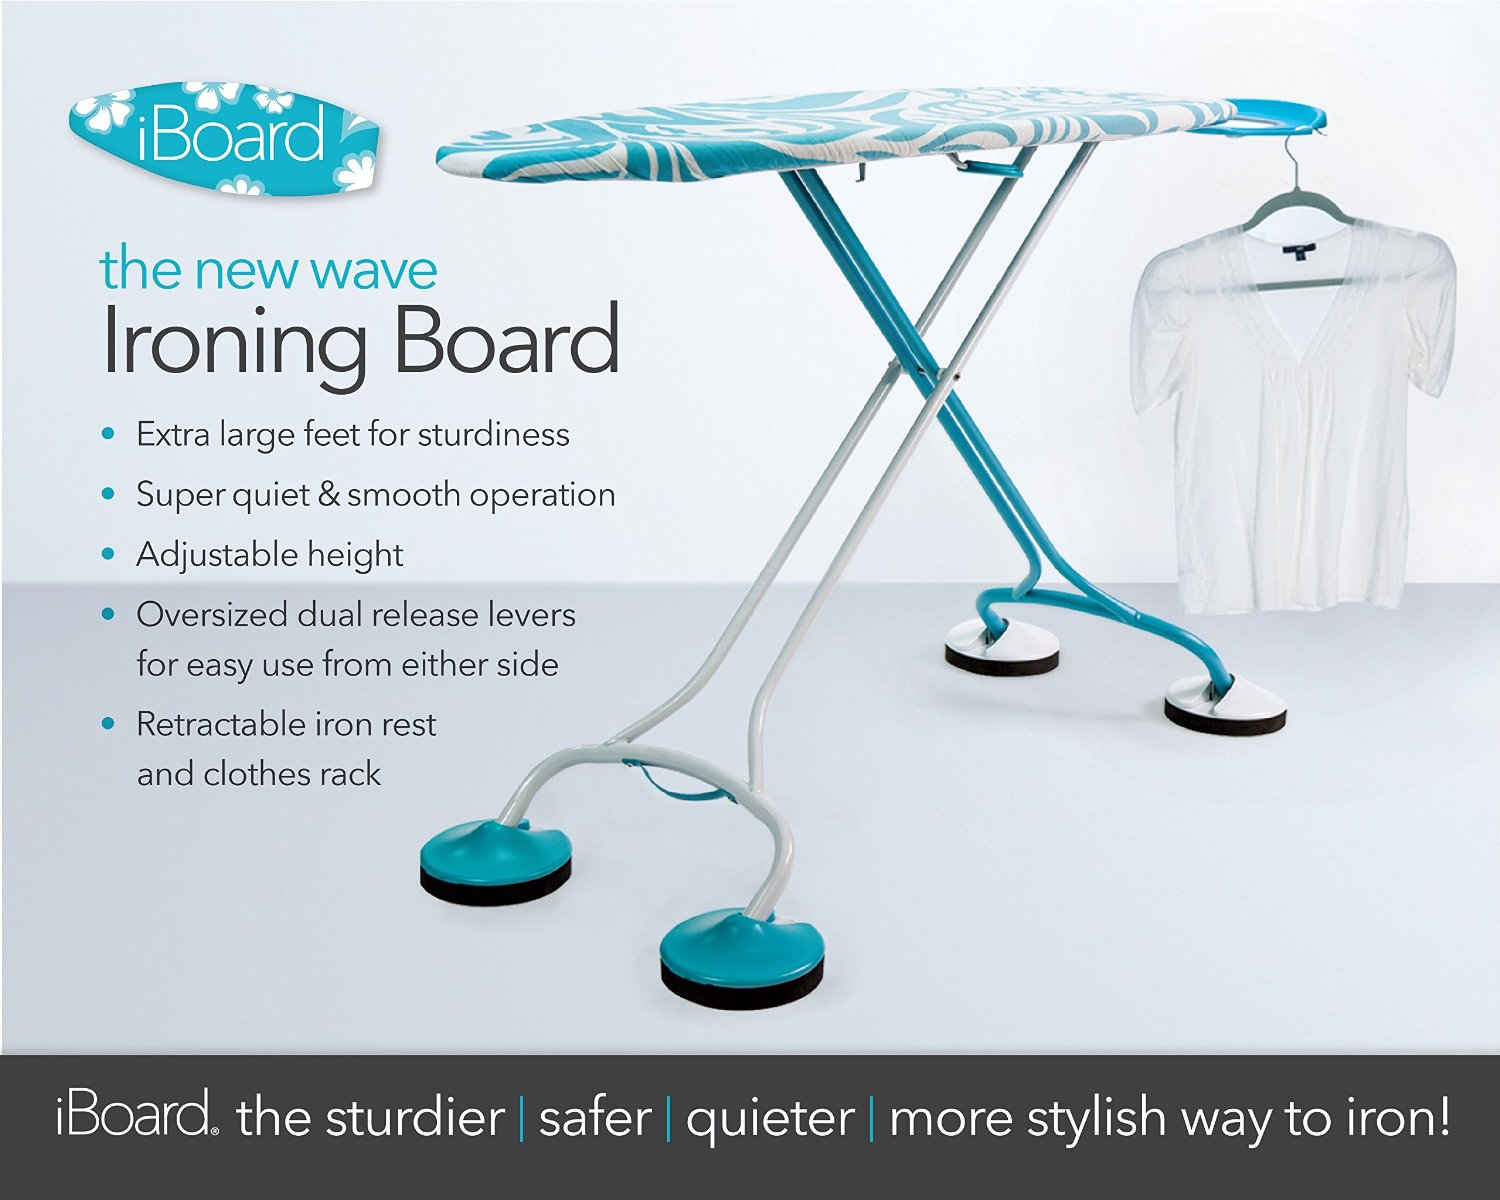 iBoard Ironing Board : a unique and unexpected gift for the bride and groom {it's ok to stray from the wedding registry for this gift} / as seen on www.BrendasWeddingBlog.com